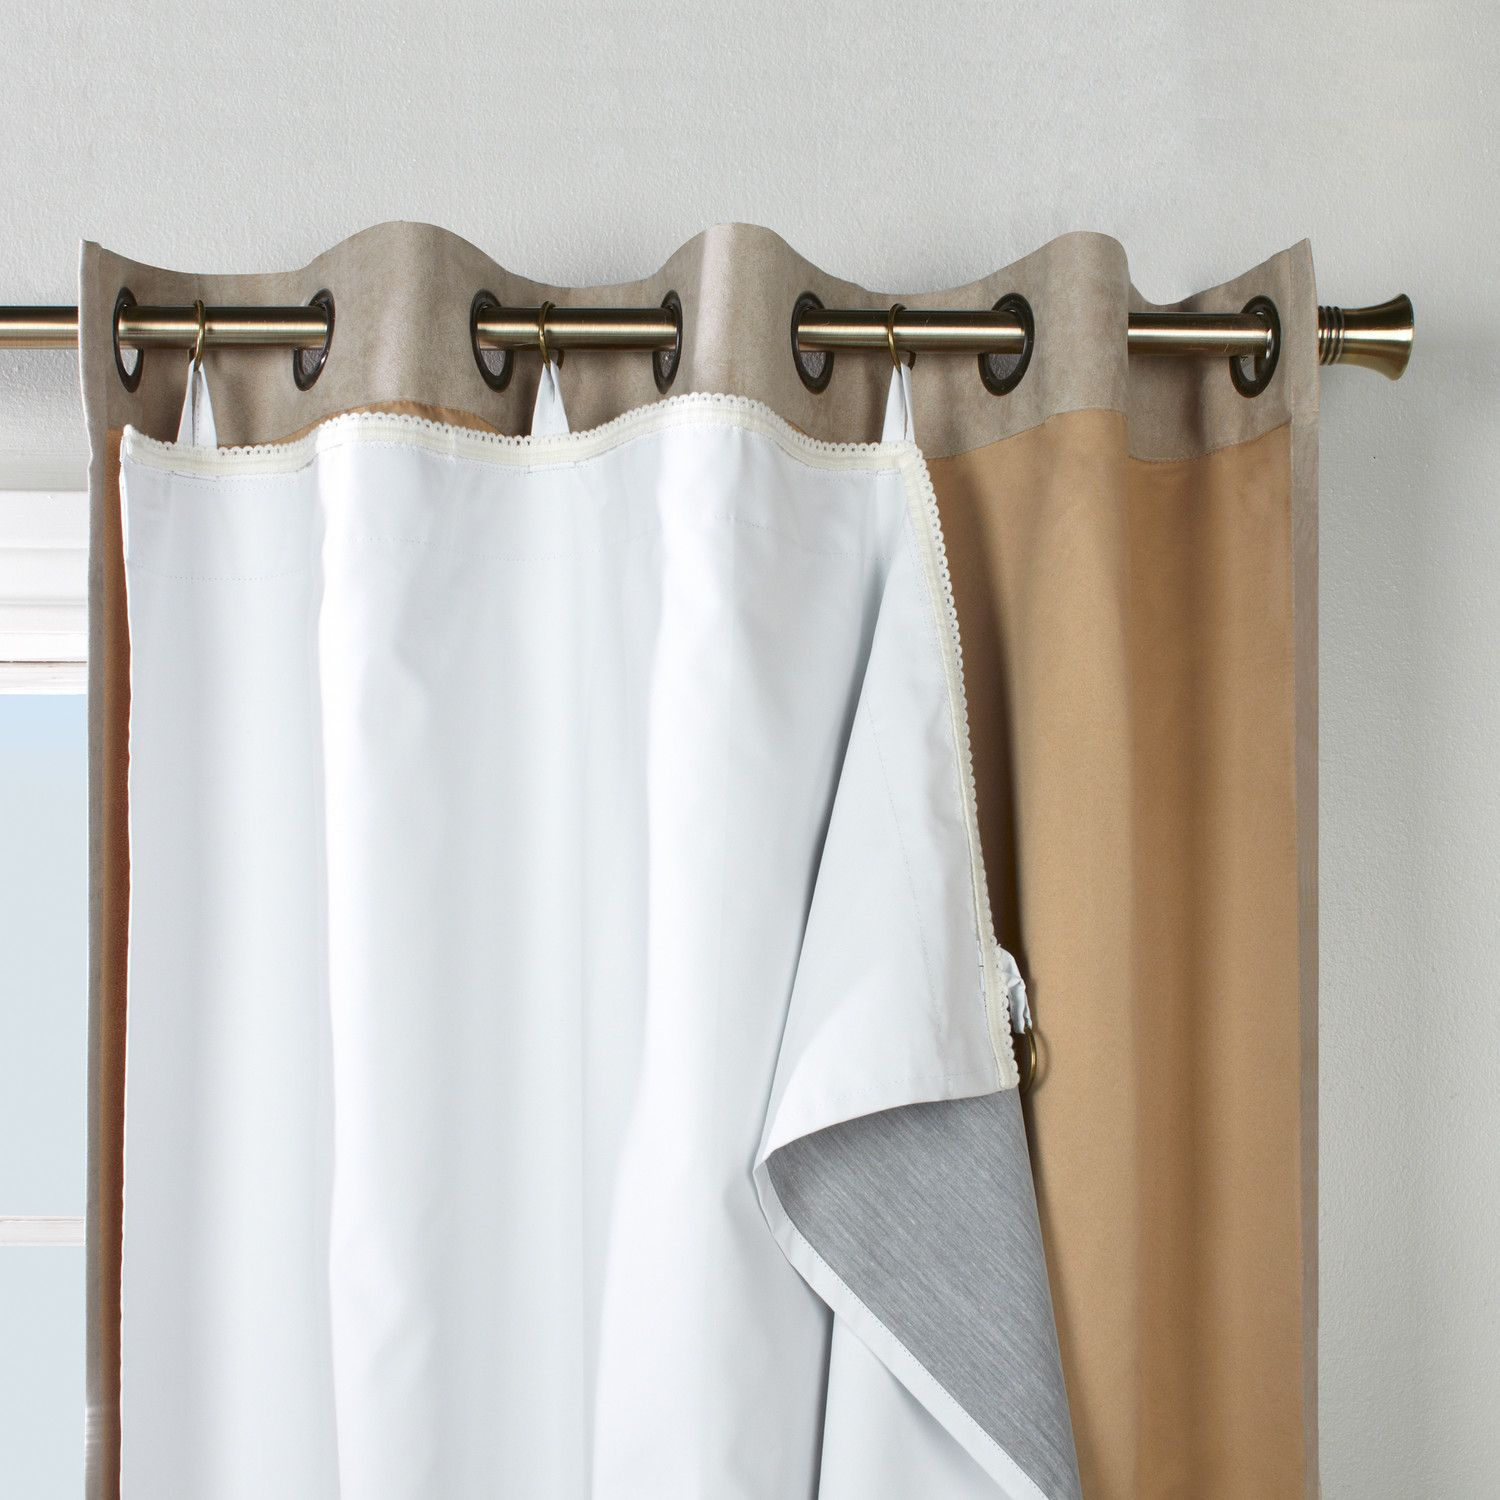 How To Arrange Blackout Liner With Curtain In White For Window